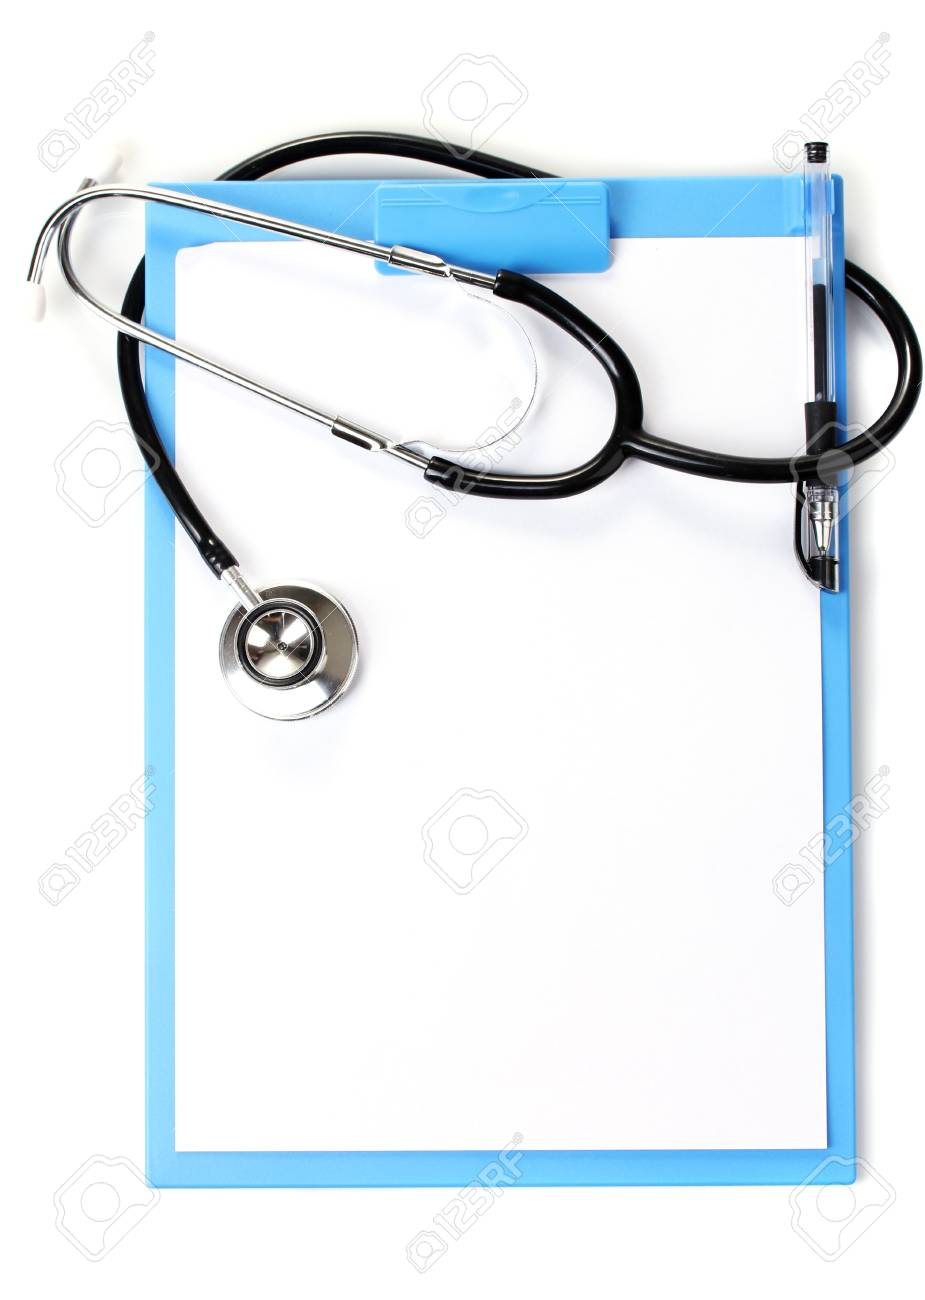 stethoscope and blue clipboard isolated on white Stock Photo - 12912805